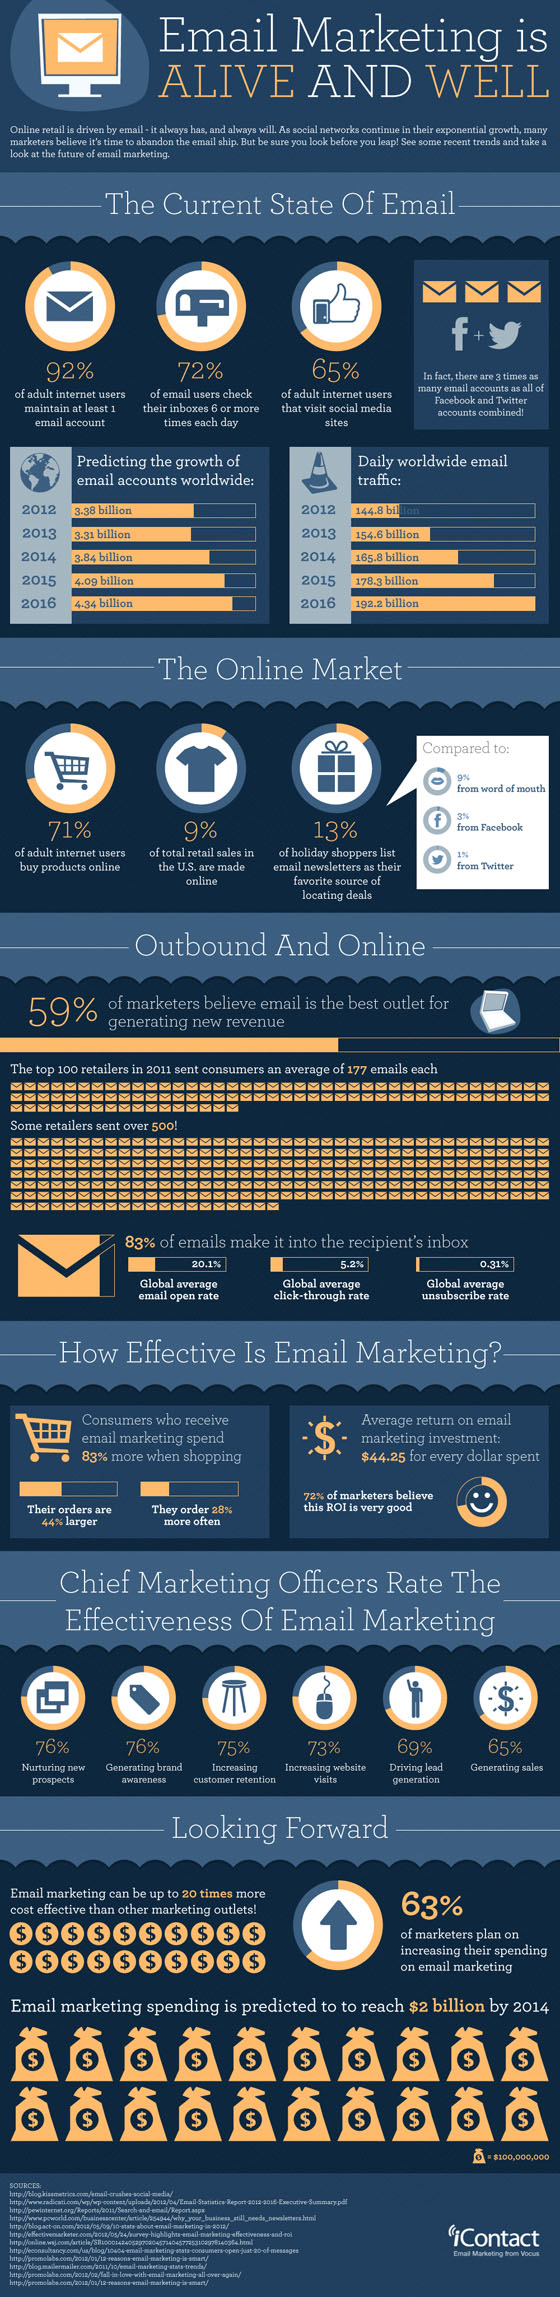 Email Marketing is Alive & Well